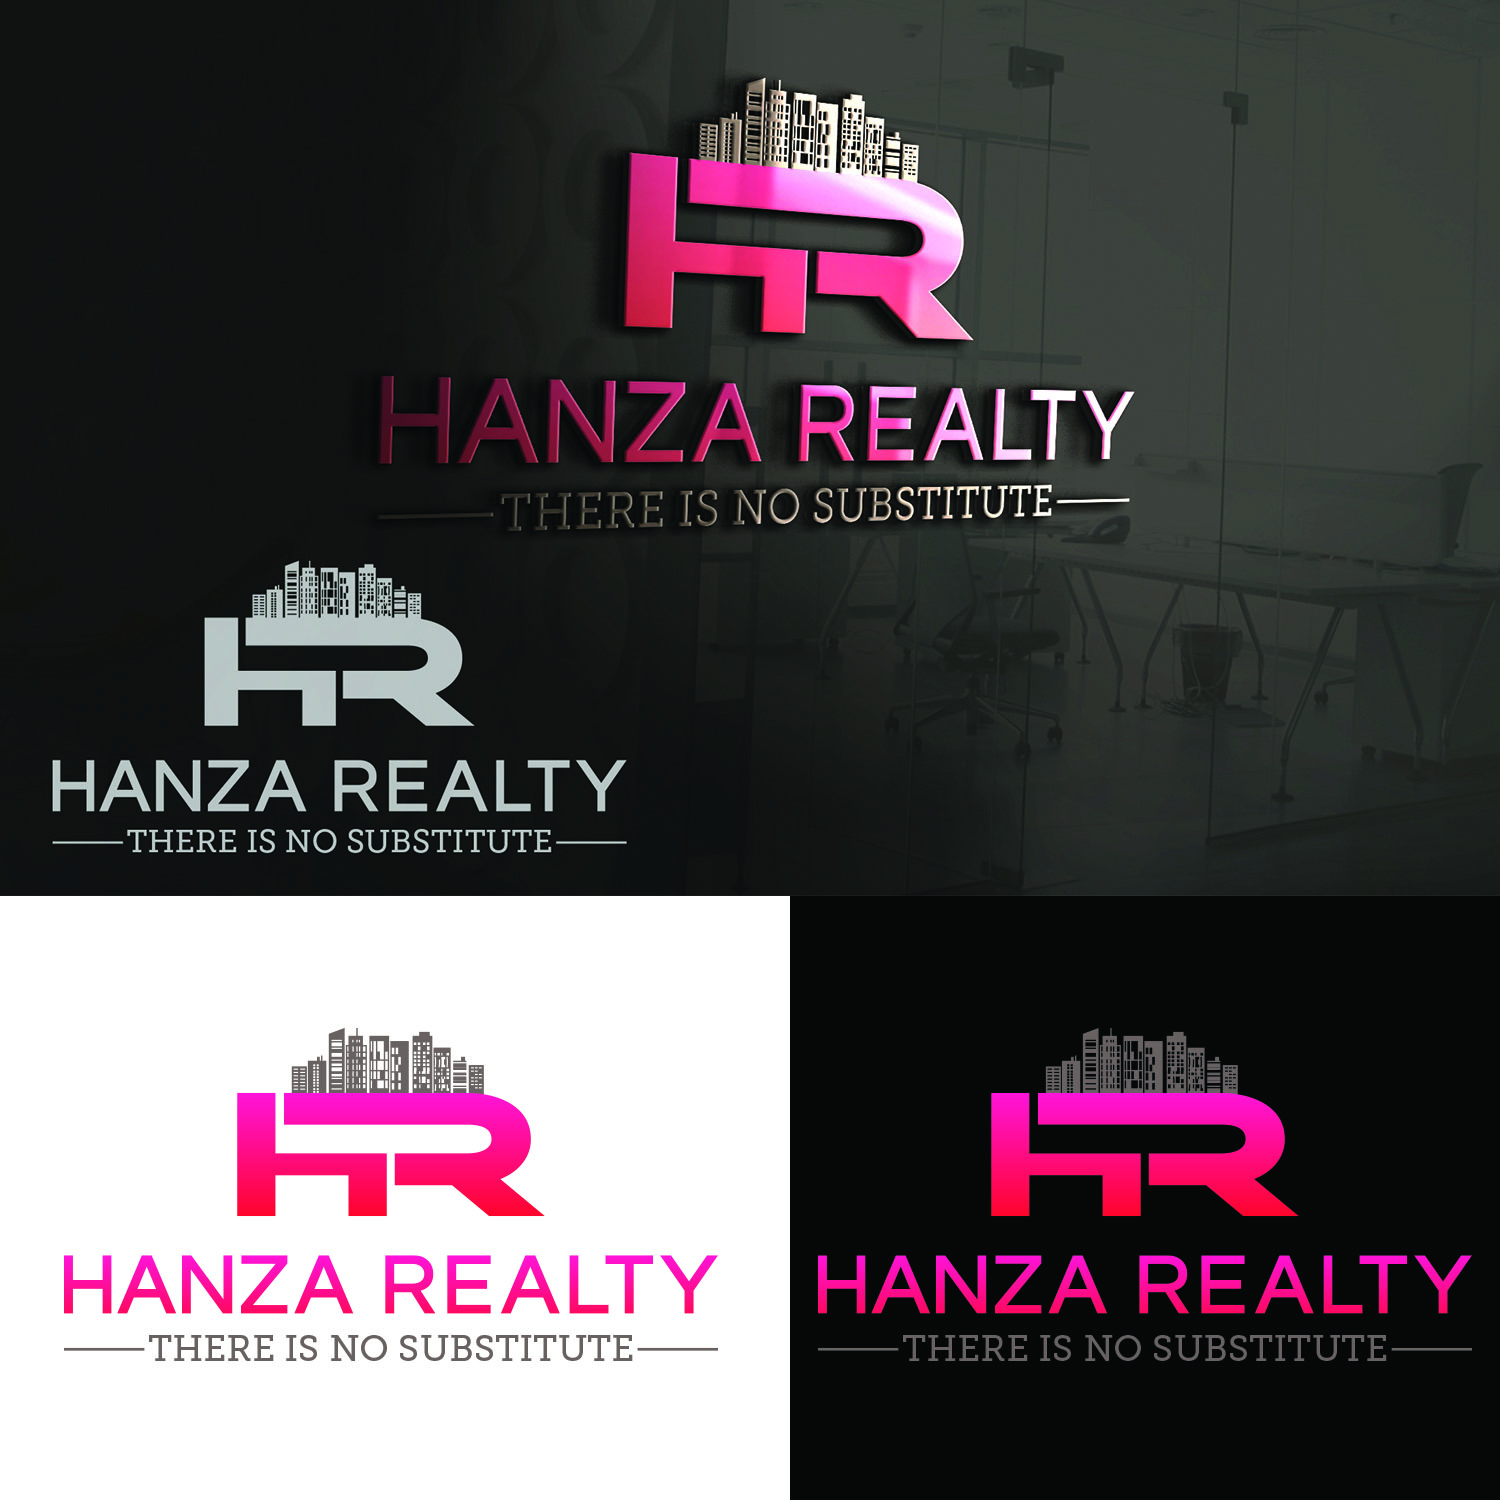 Logo Design by Umair ahmed Iqbal - Entry No. 316 in the Logo Design Contest Logo Design for Hanza Realty.